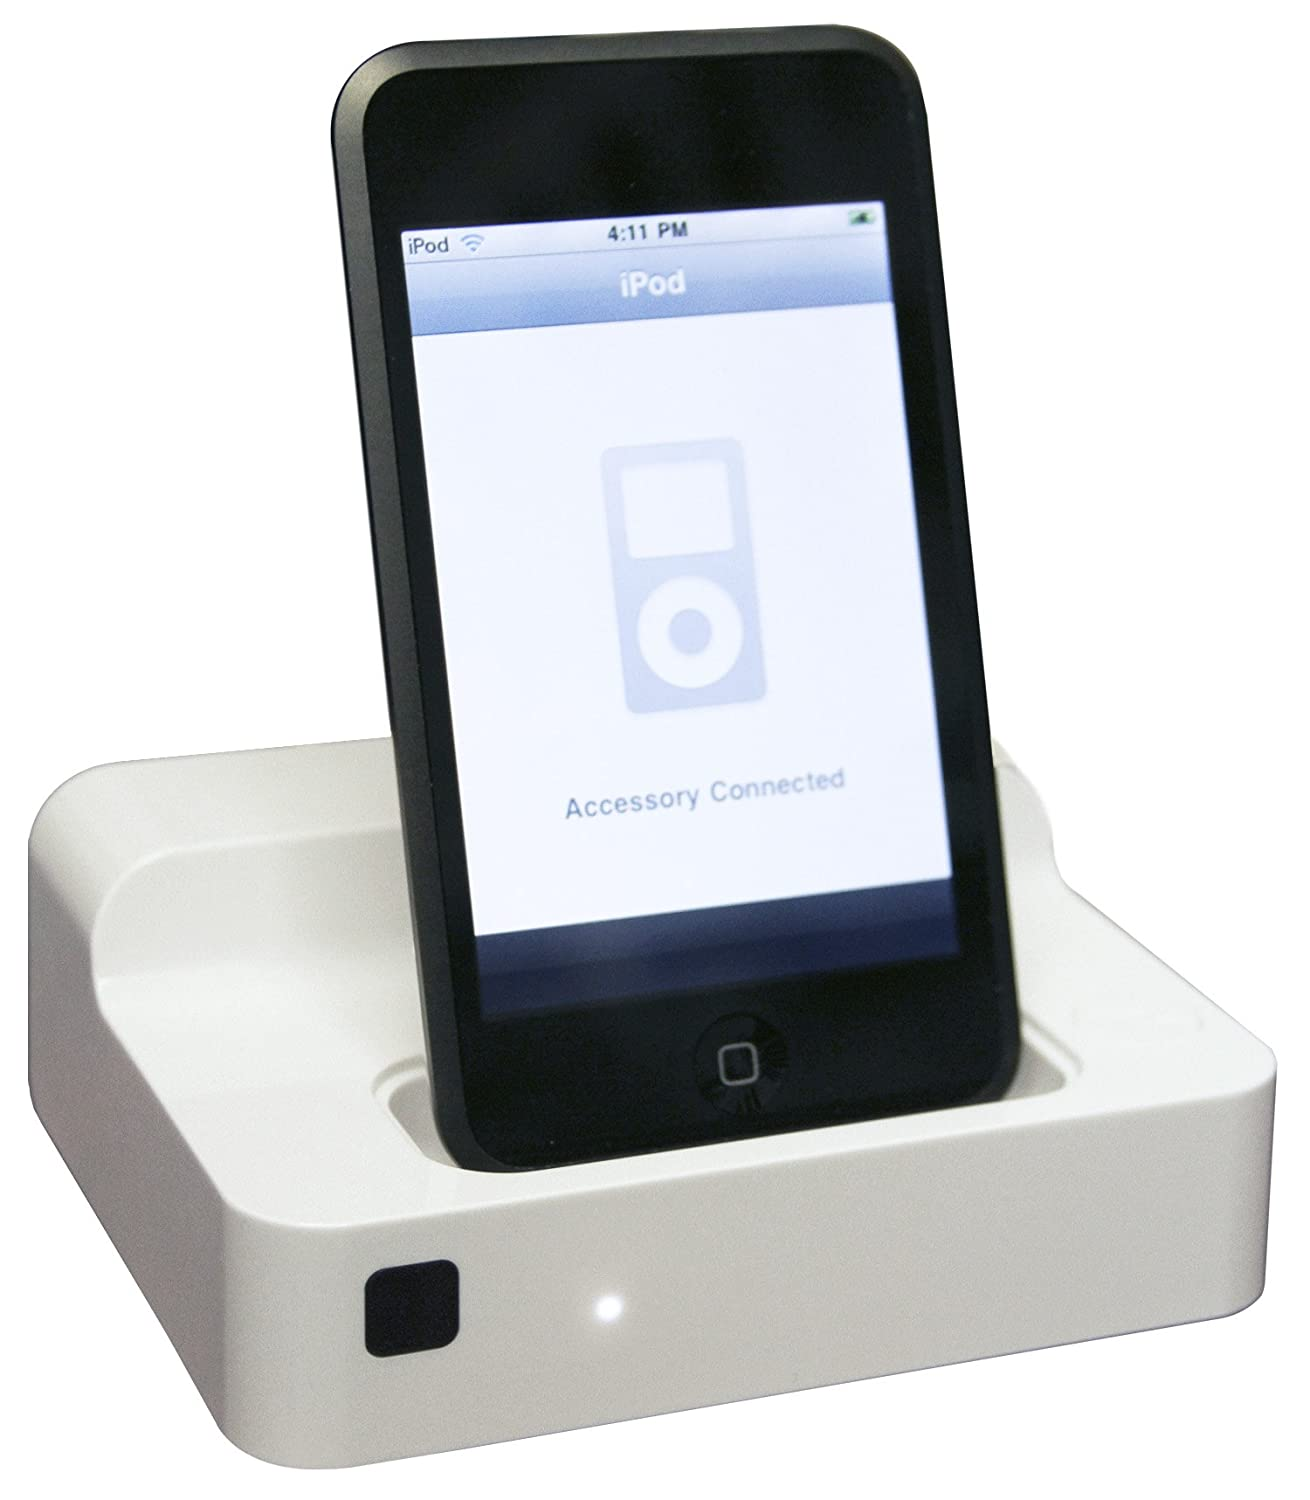 Amazon.com: Leviton 96A00-2 Wireless Dock for iPods and iPhones ...